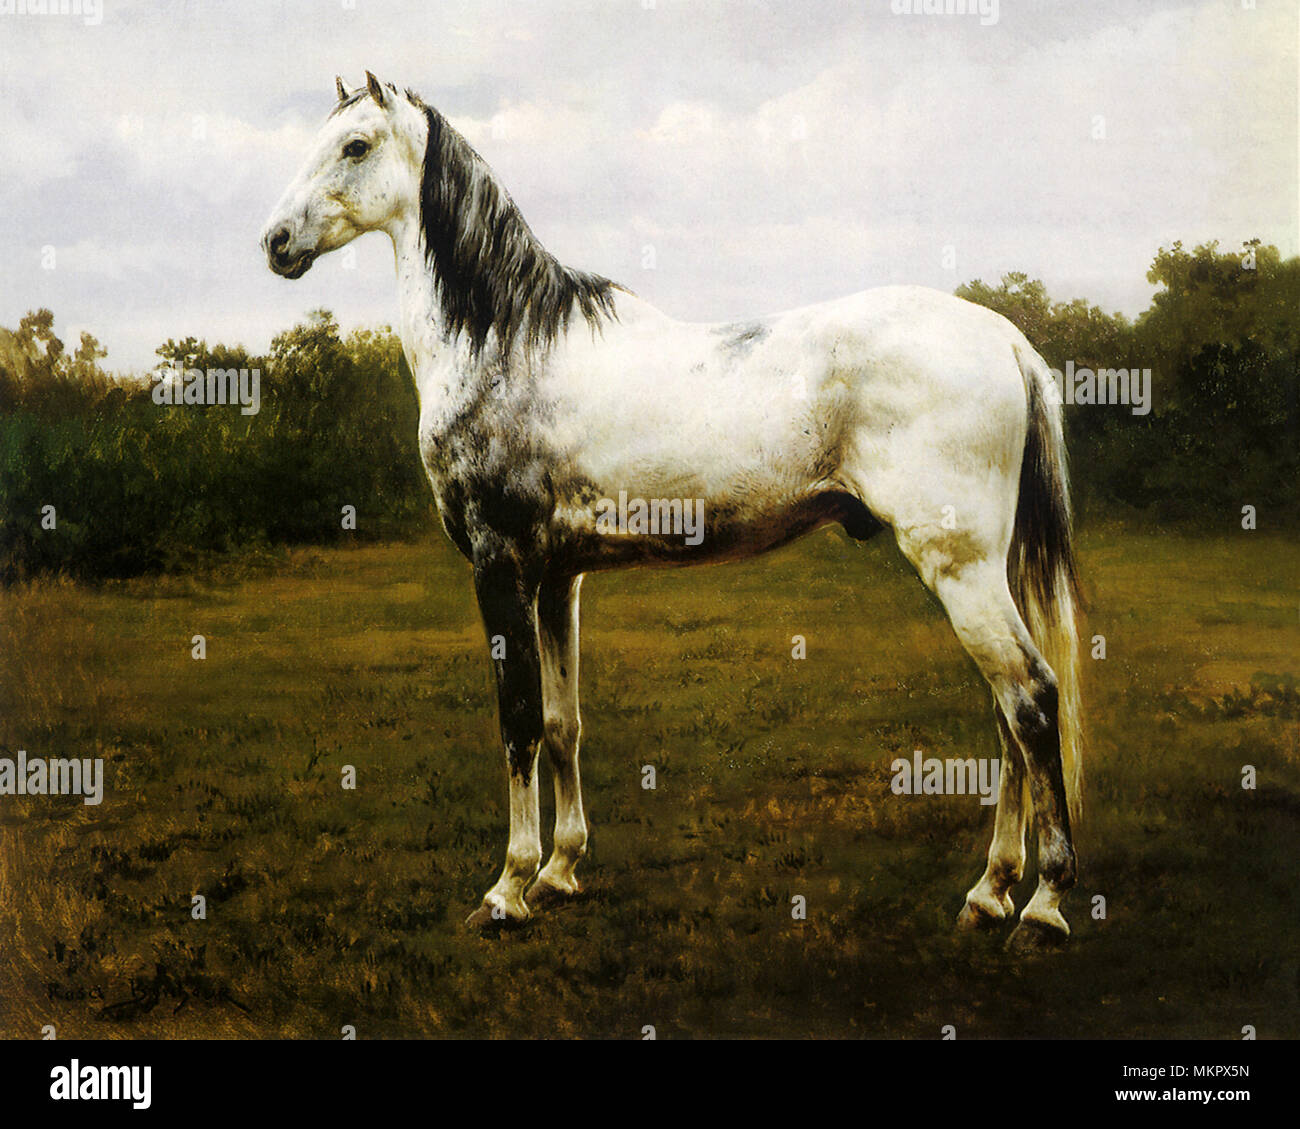 Gray Tinted Horse - Stock Image